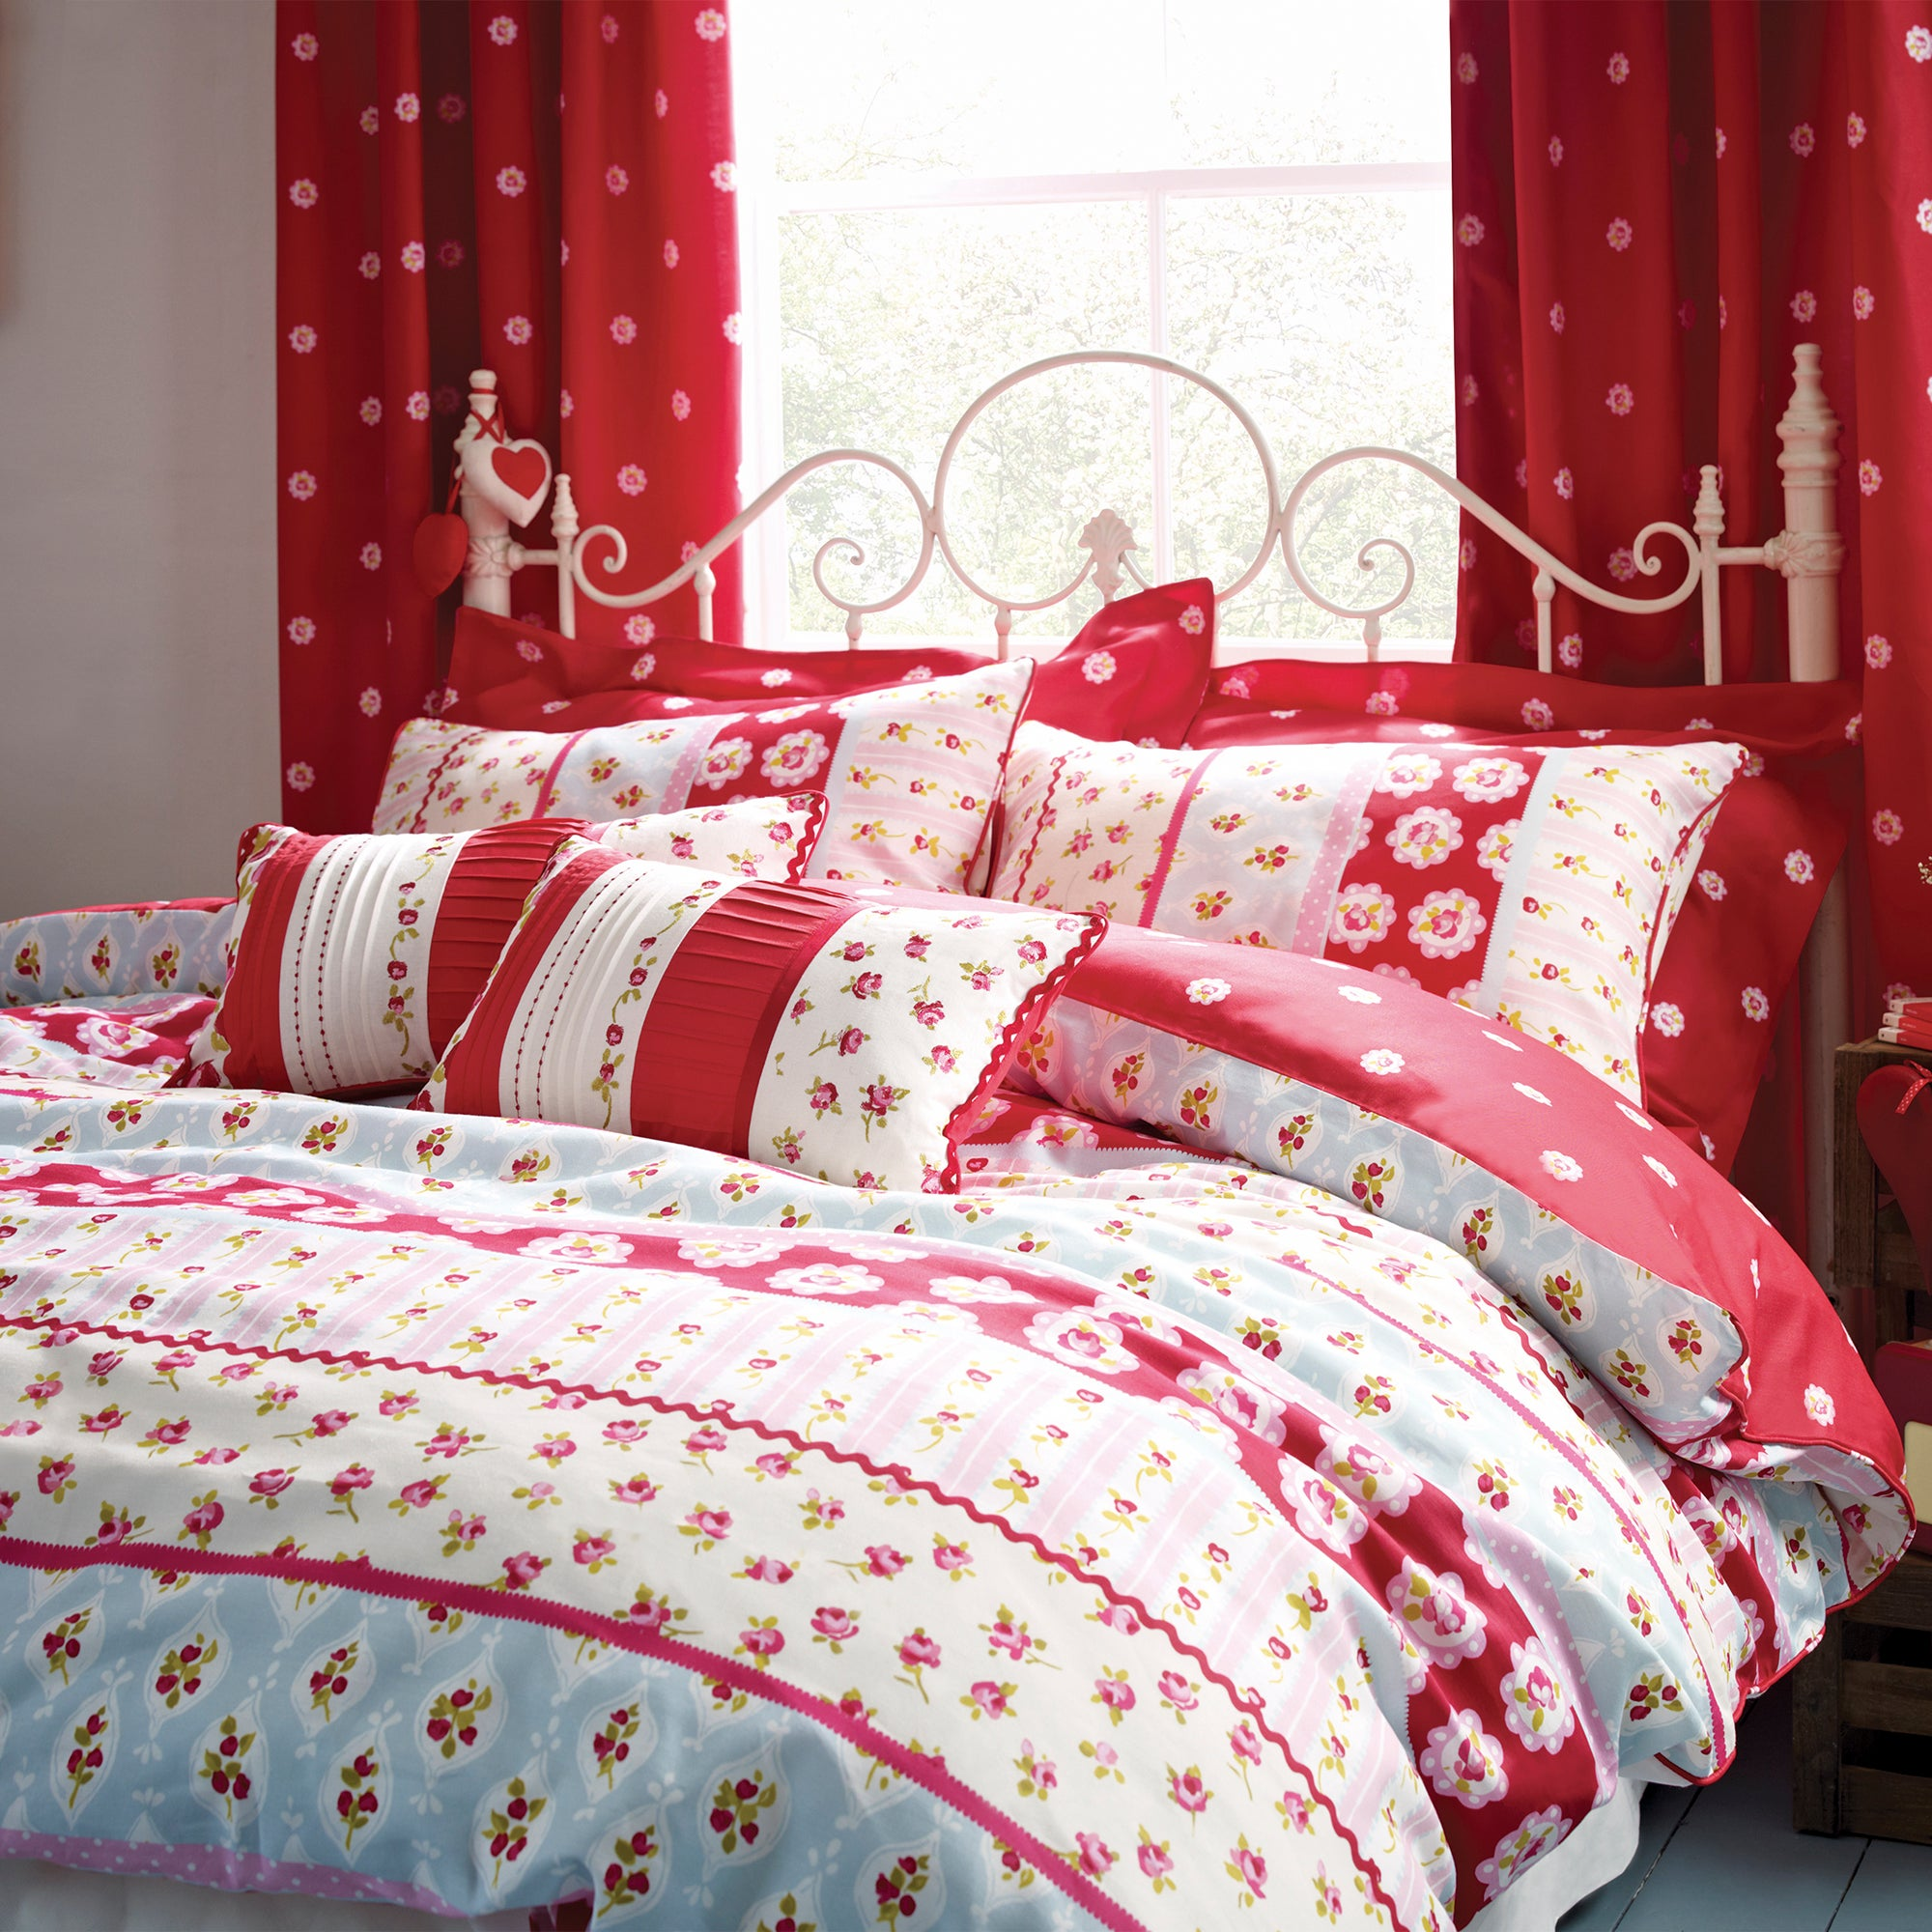 Rose and Ellis Allexton Collection Duvet Cover Set